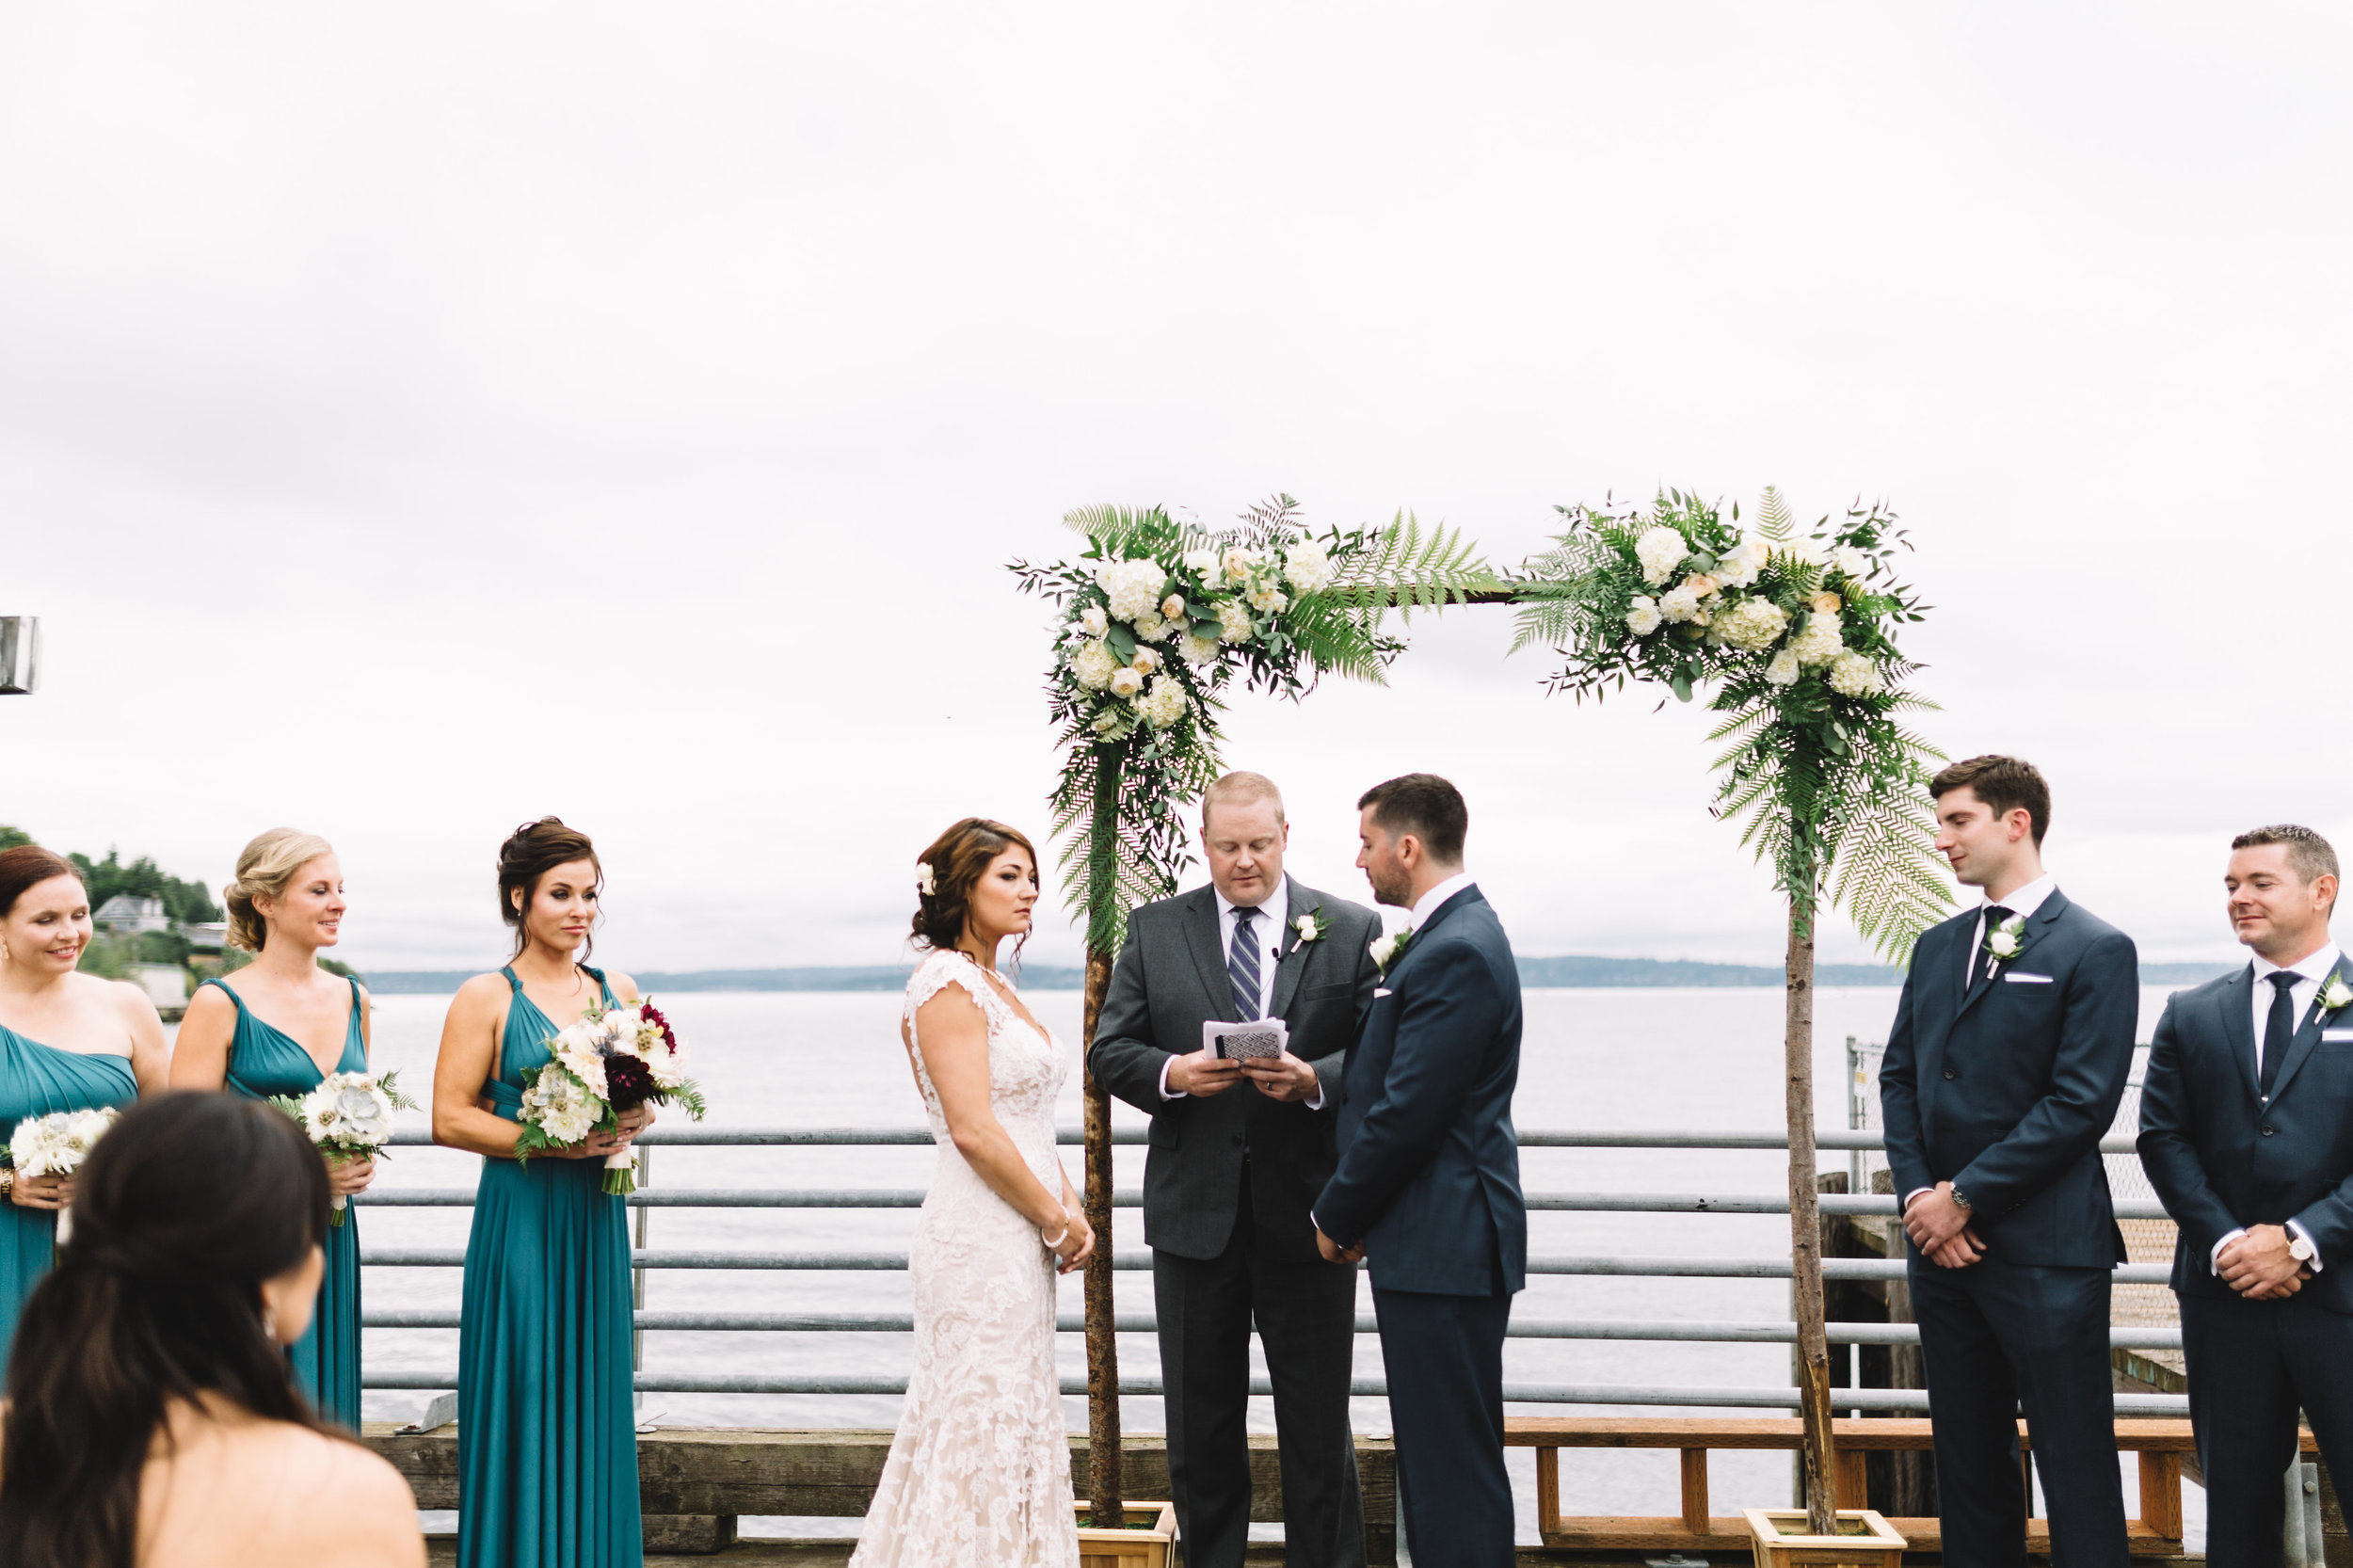 Sublime Stems | Linda Kahle Photography | Ray's Boathouse